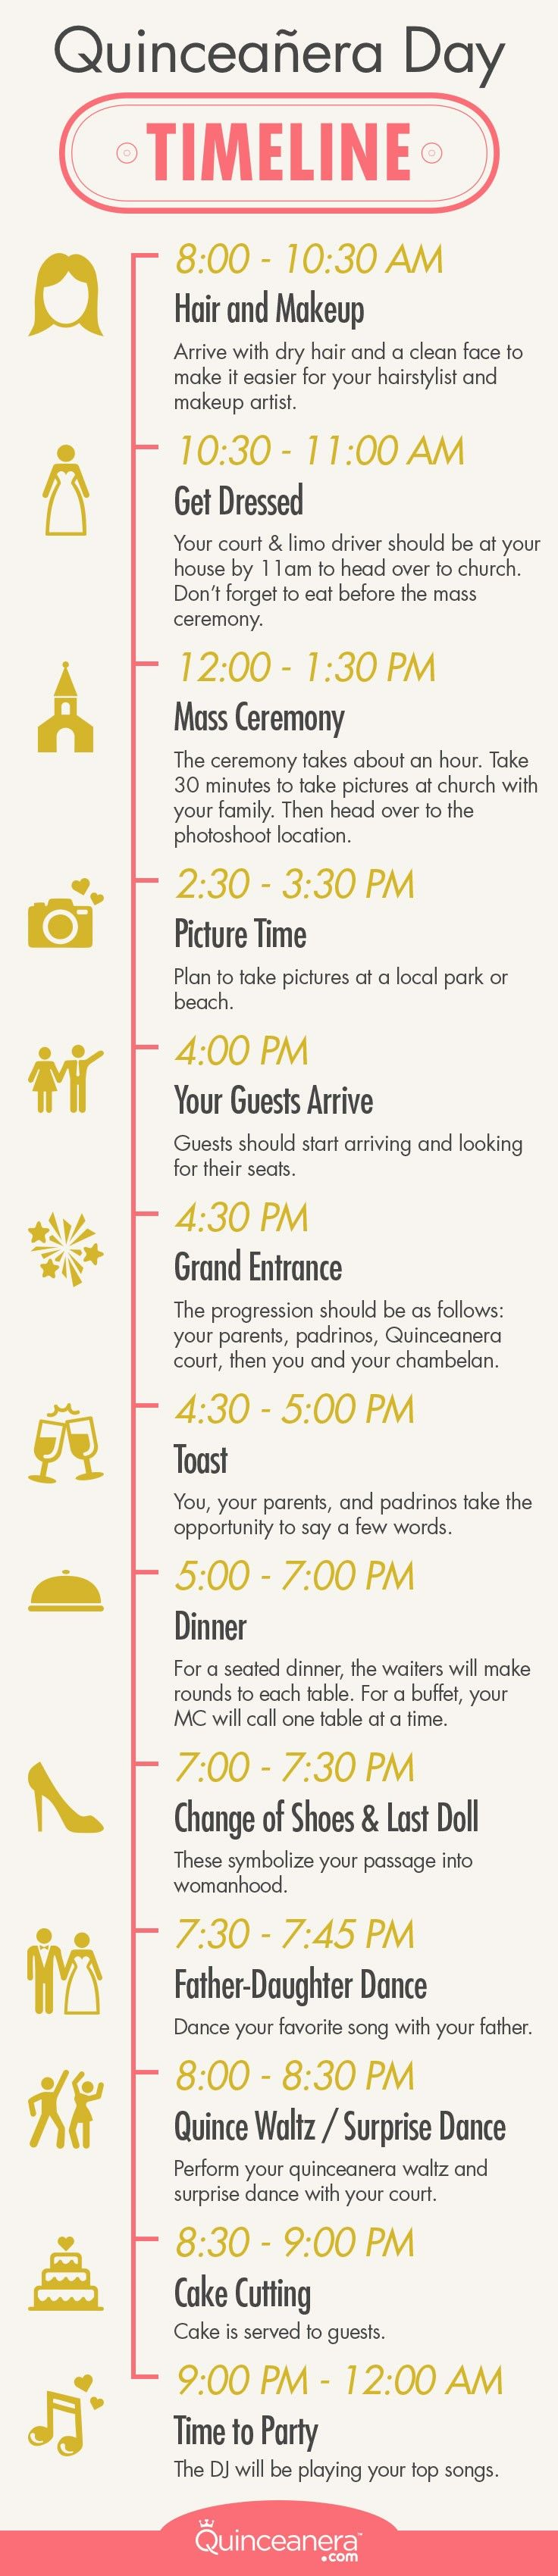 The complete guide to your quinceanera day guideline | Quinceanera Day Timeline | Quinceanera Planning